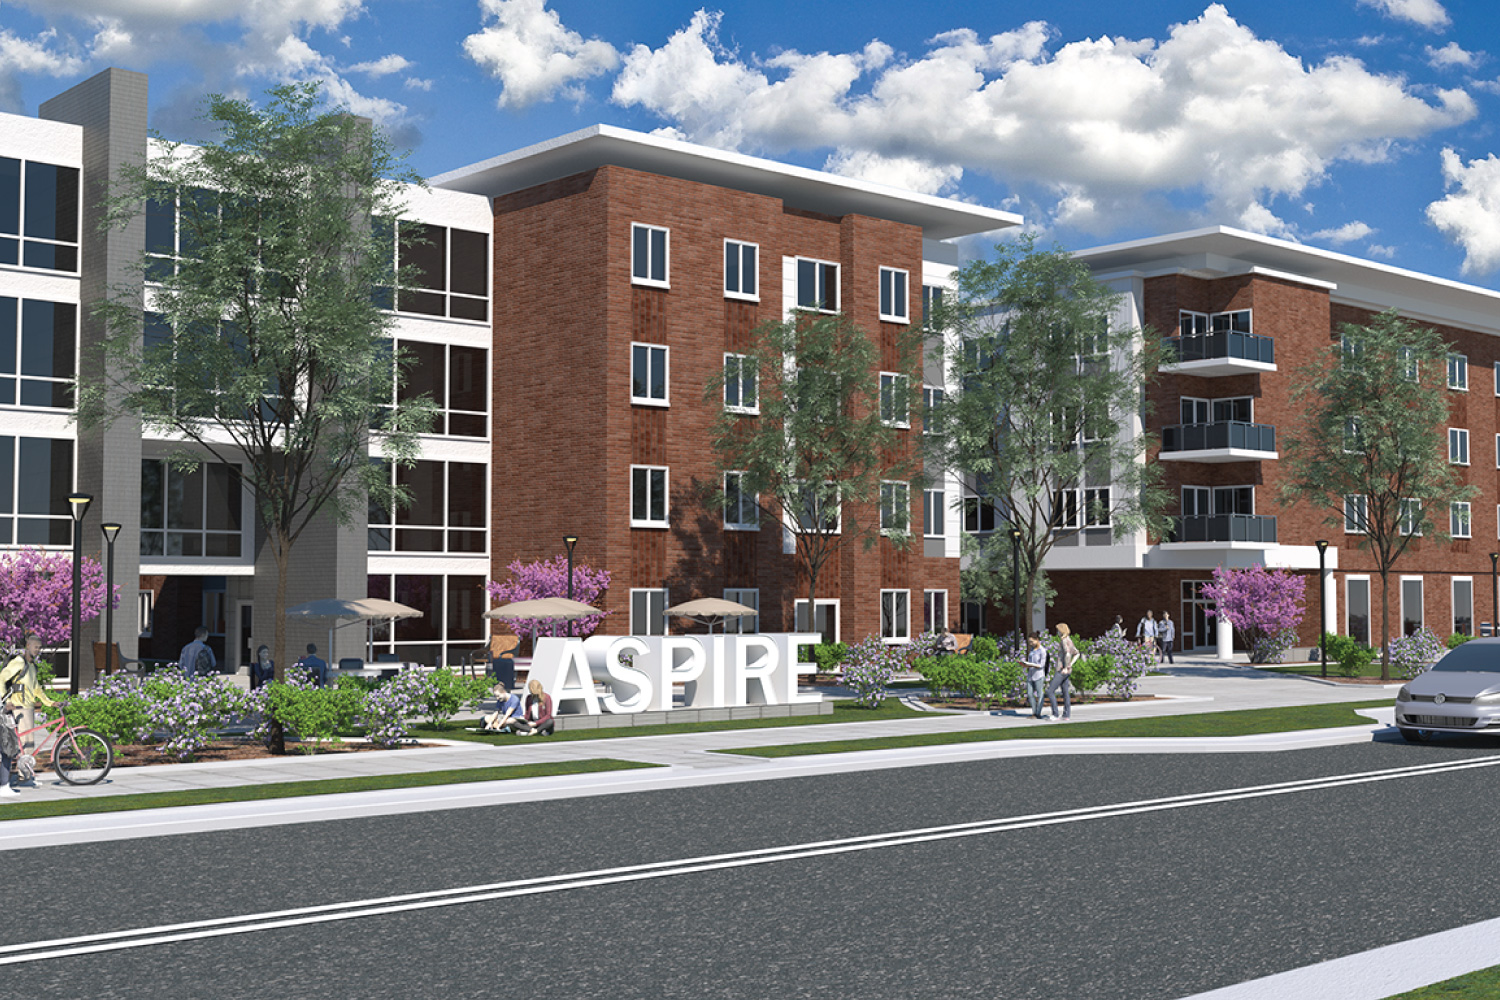 Aspire apartments incorporate 21st century digital lifestyle on Purdue campus